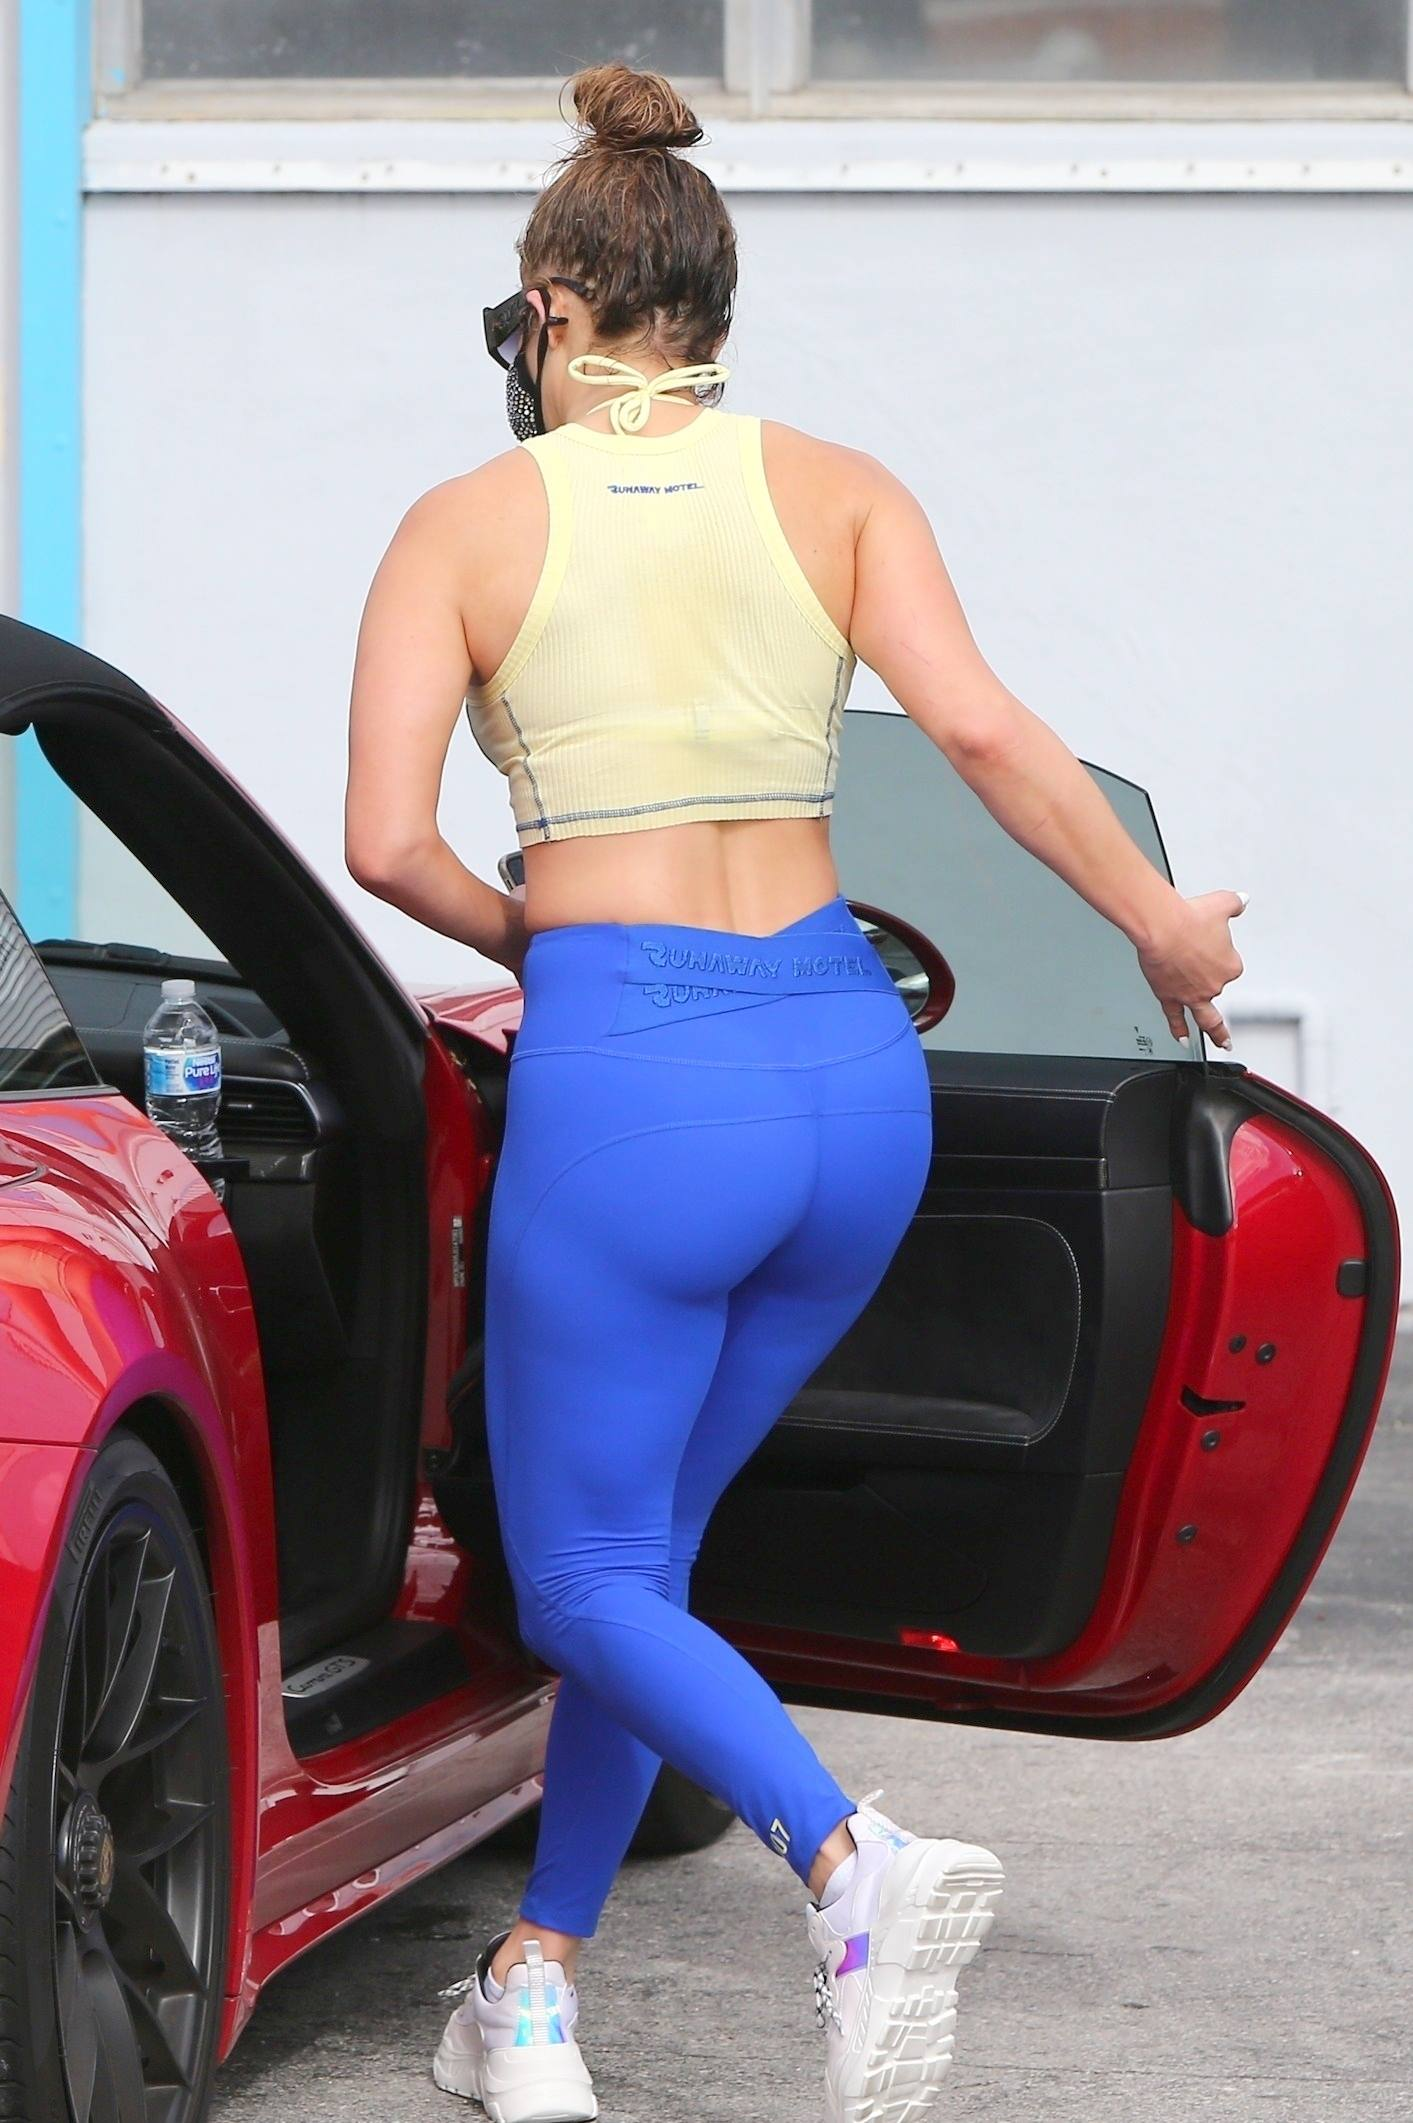 70+ Hot Pictures Of Jennifer Lopez Prove That She Has The